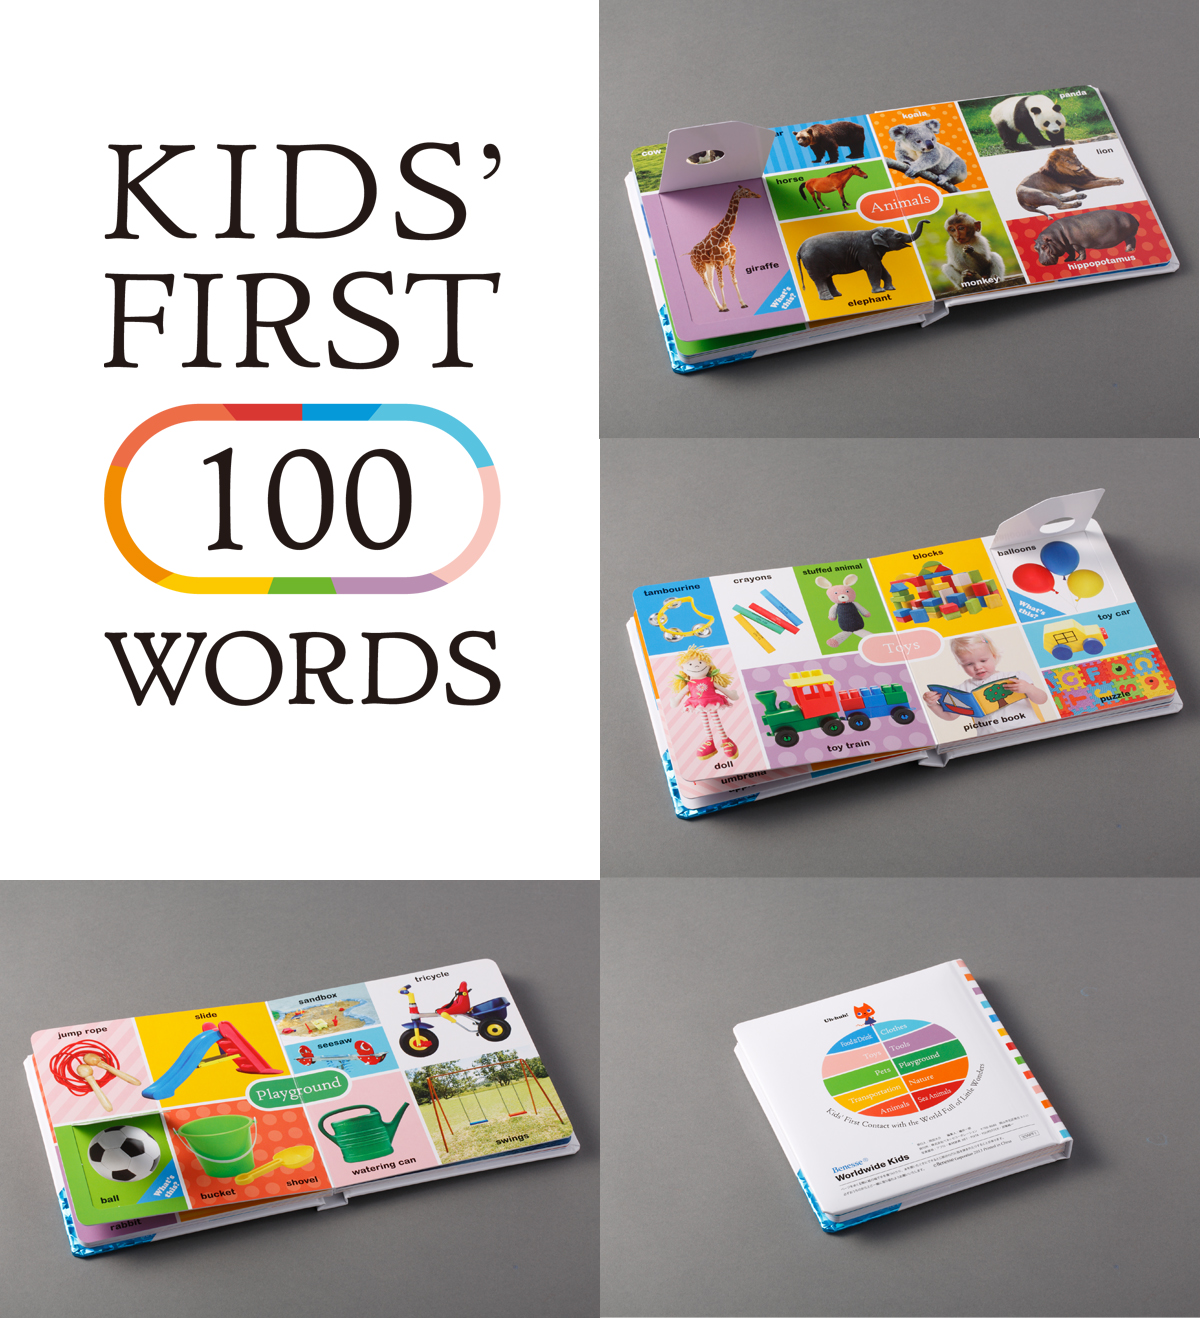 Kids' First 100 Words